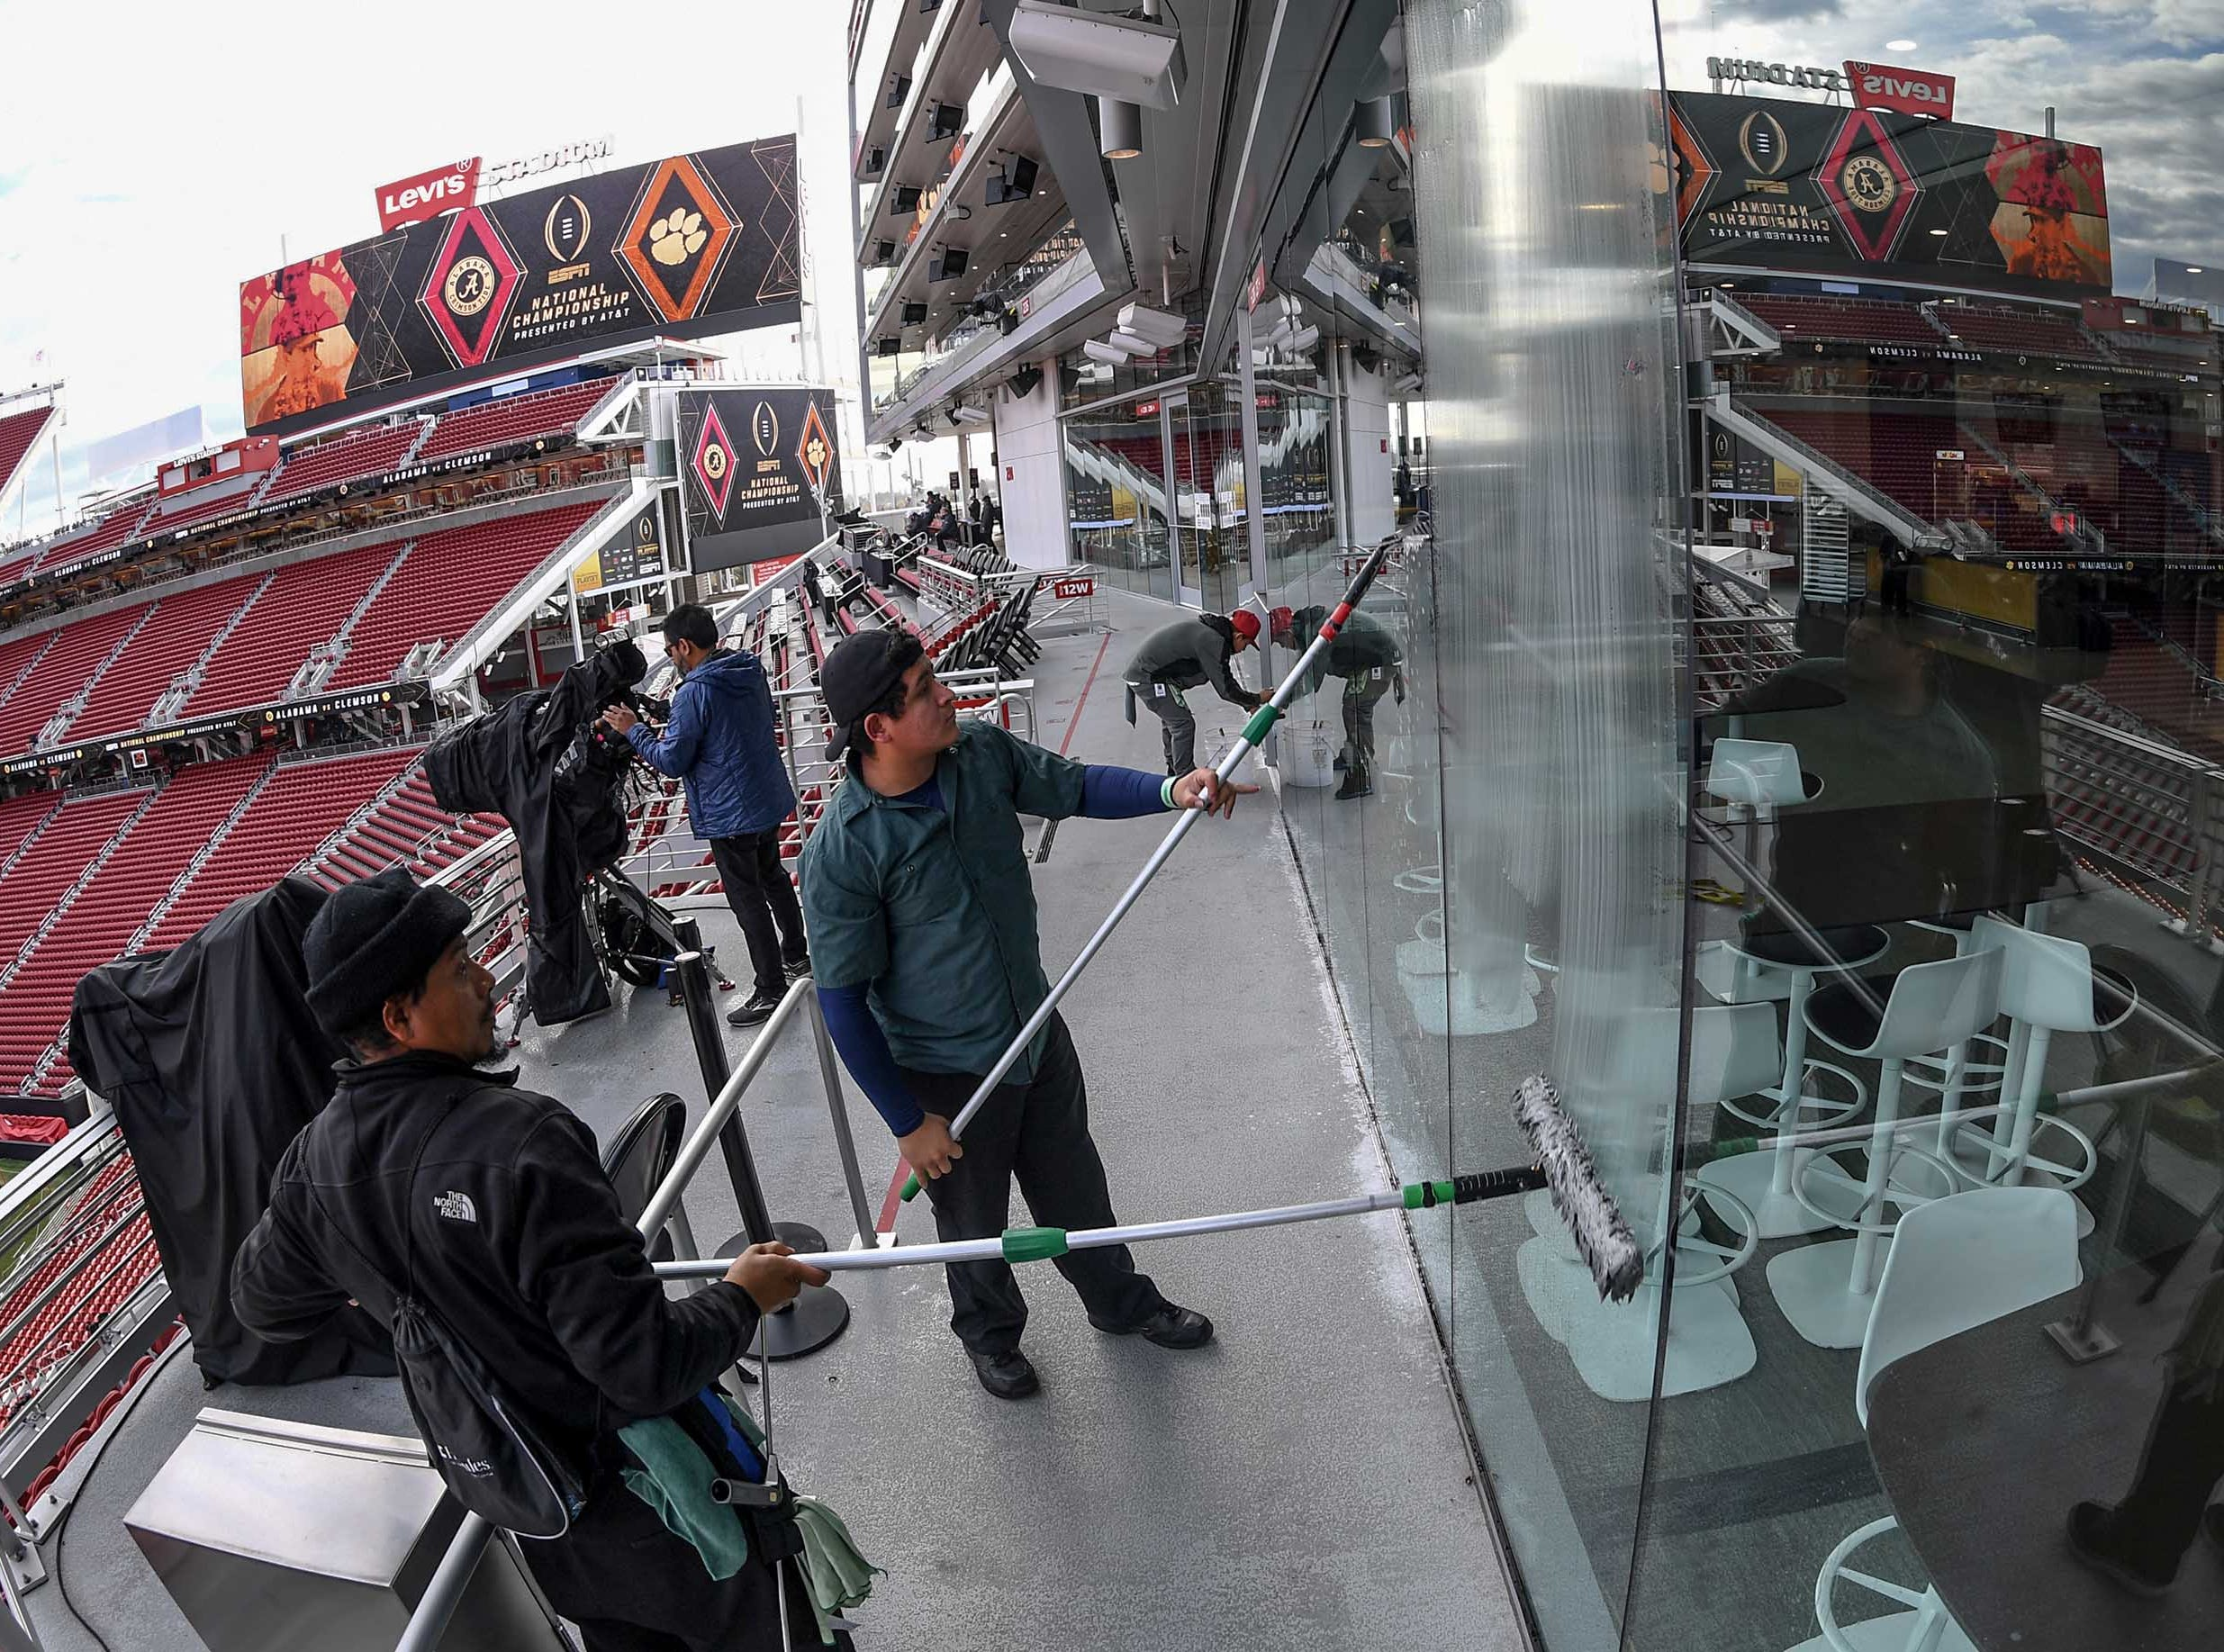 Window cleaners work as many officials prepare before the kickoff during the College Football Championship at Levi's Stadium in Santa Clara, California Monday, January 7, 2019.